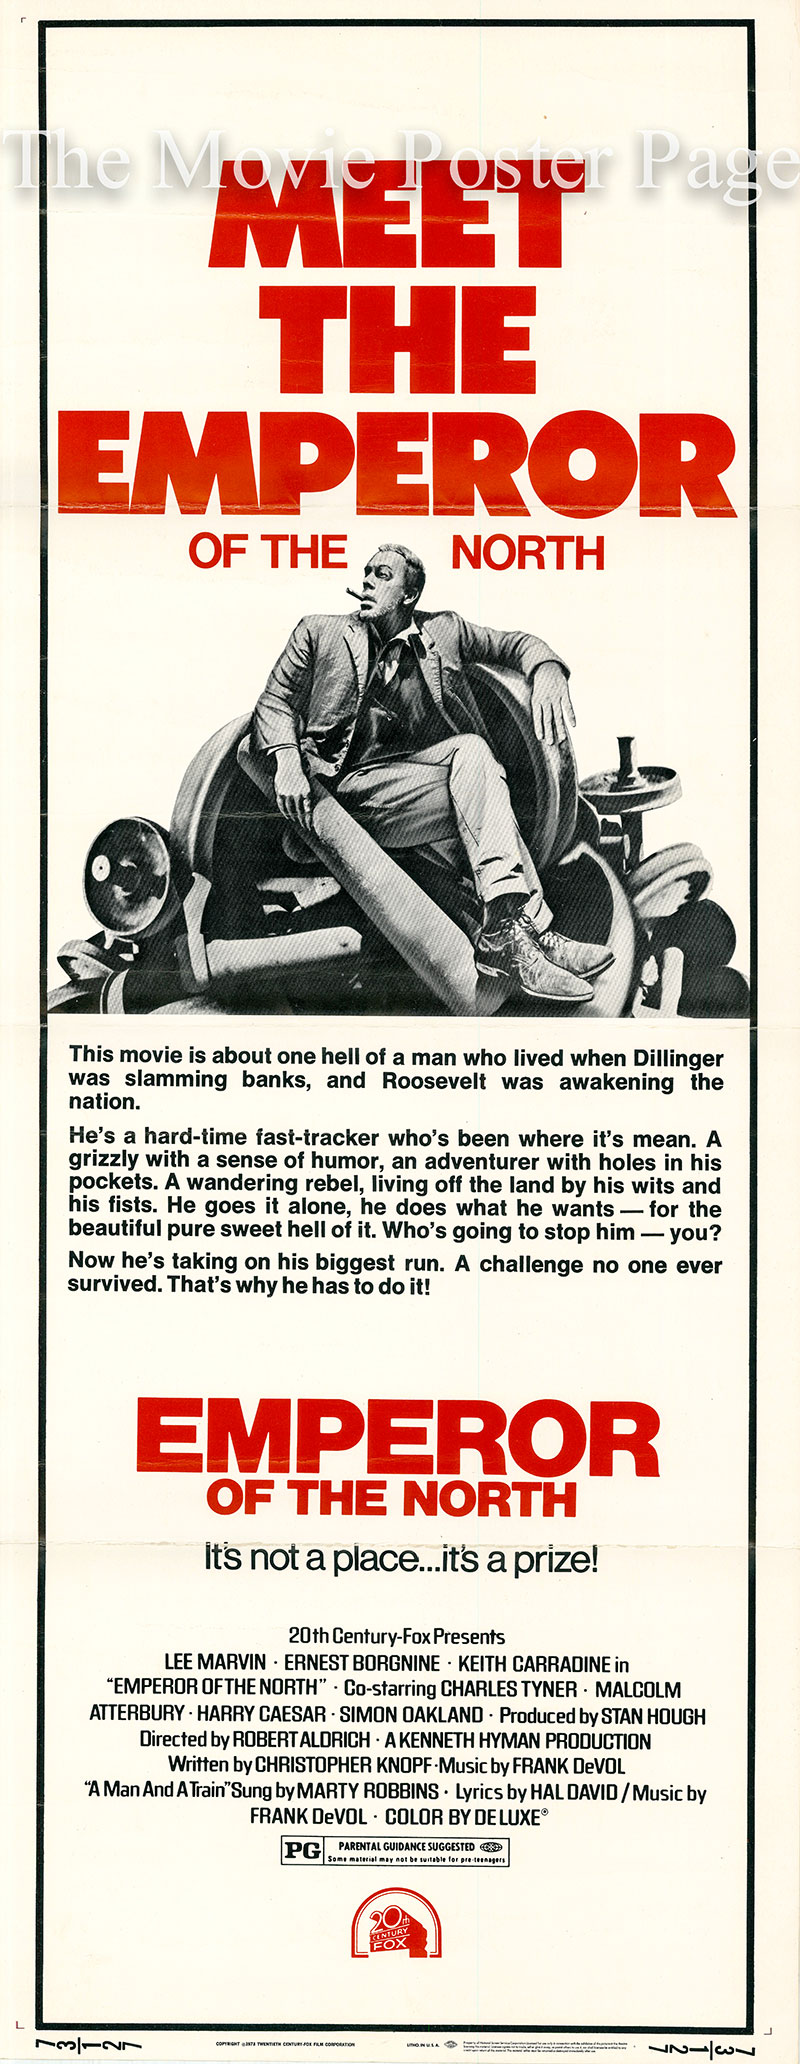 Pictured is a US insert poster for the 1973 Robert Aldrich film Emperor of the North starring Lee Marvin.